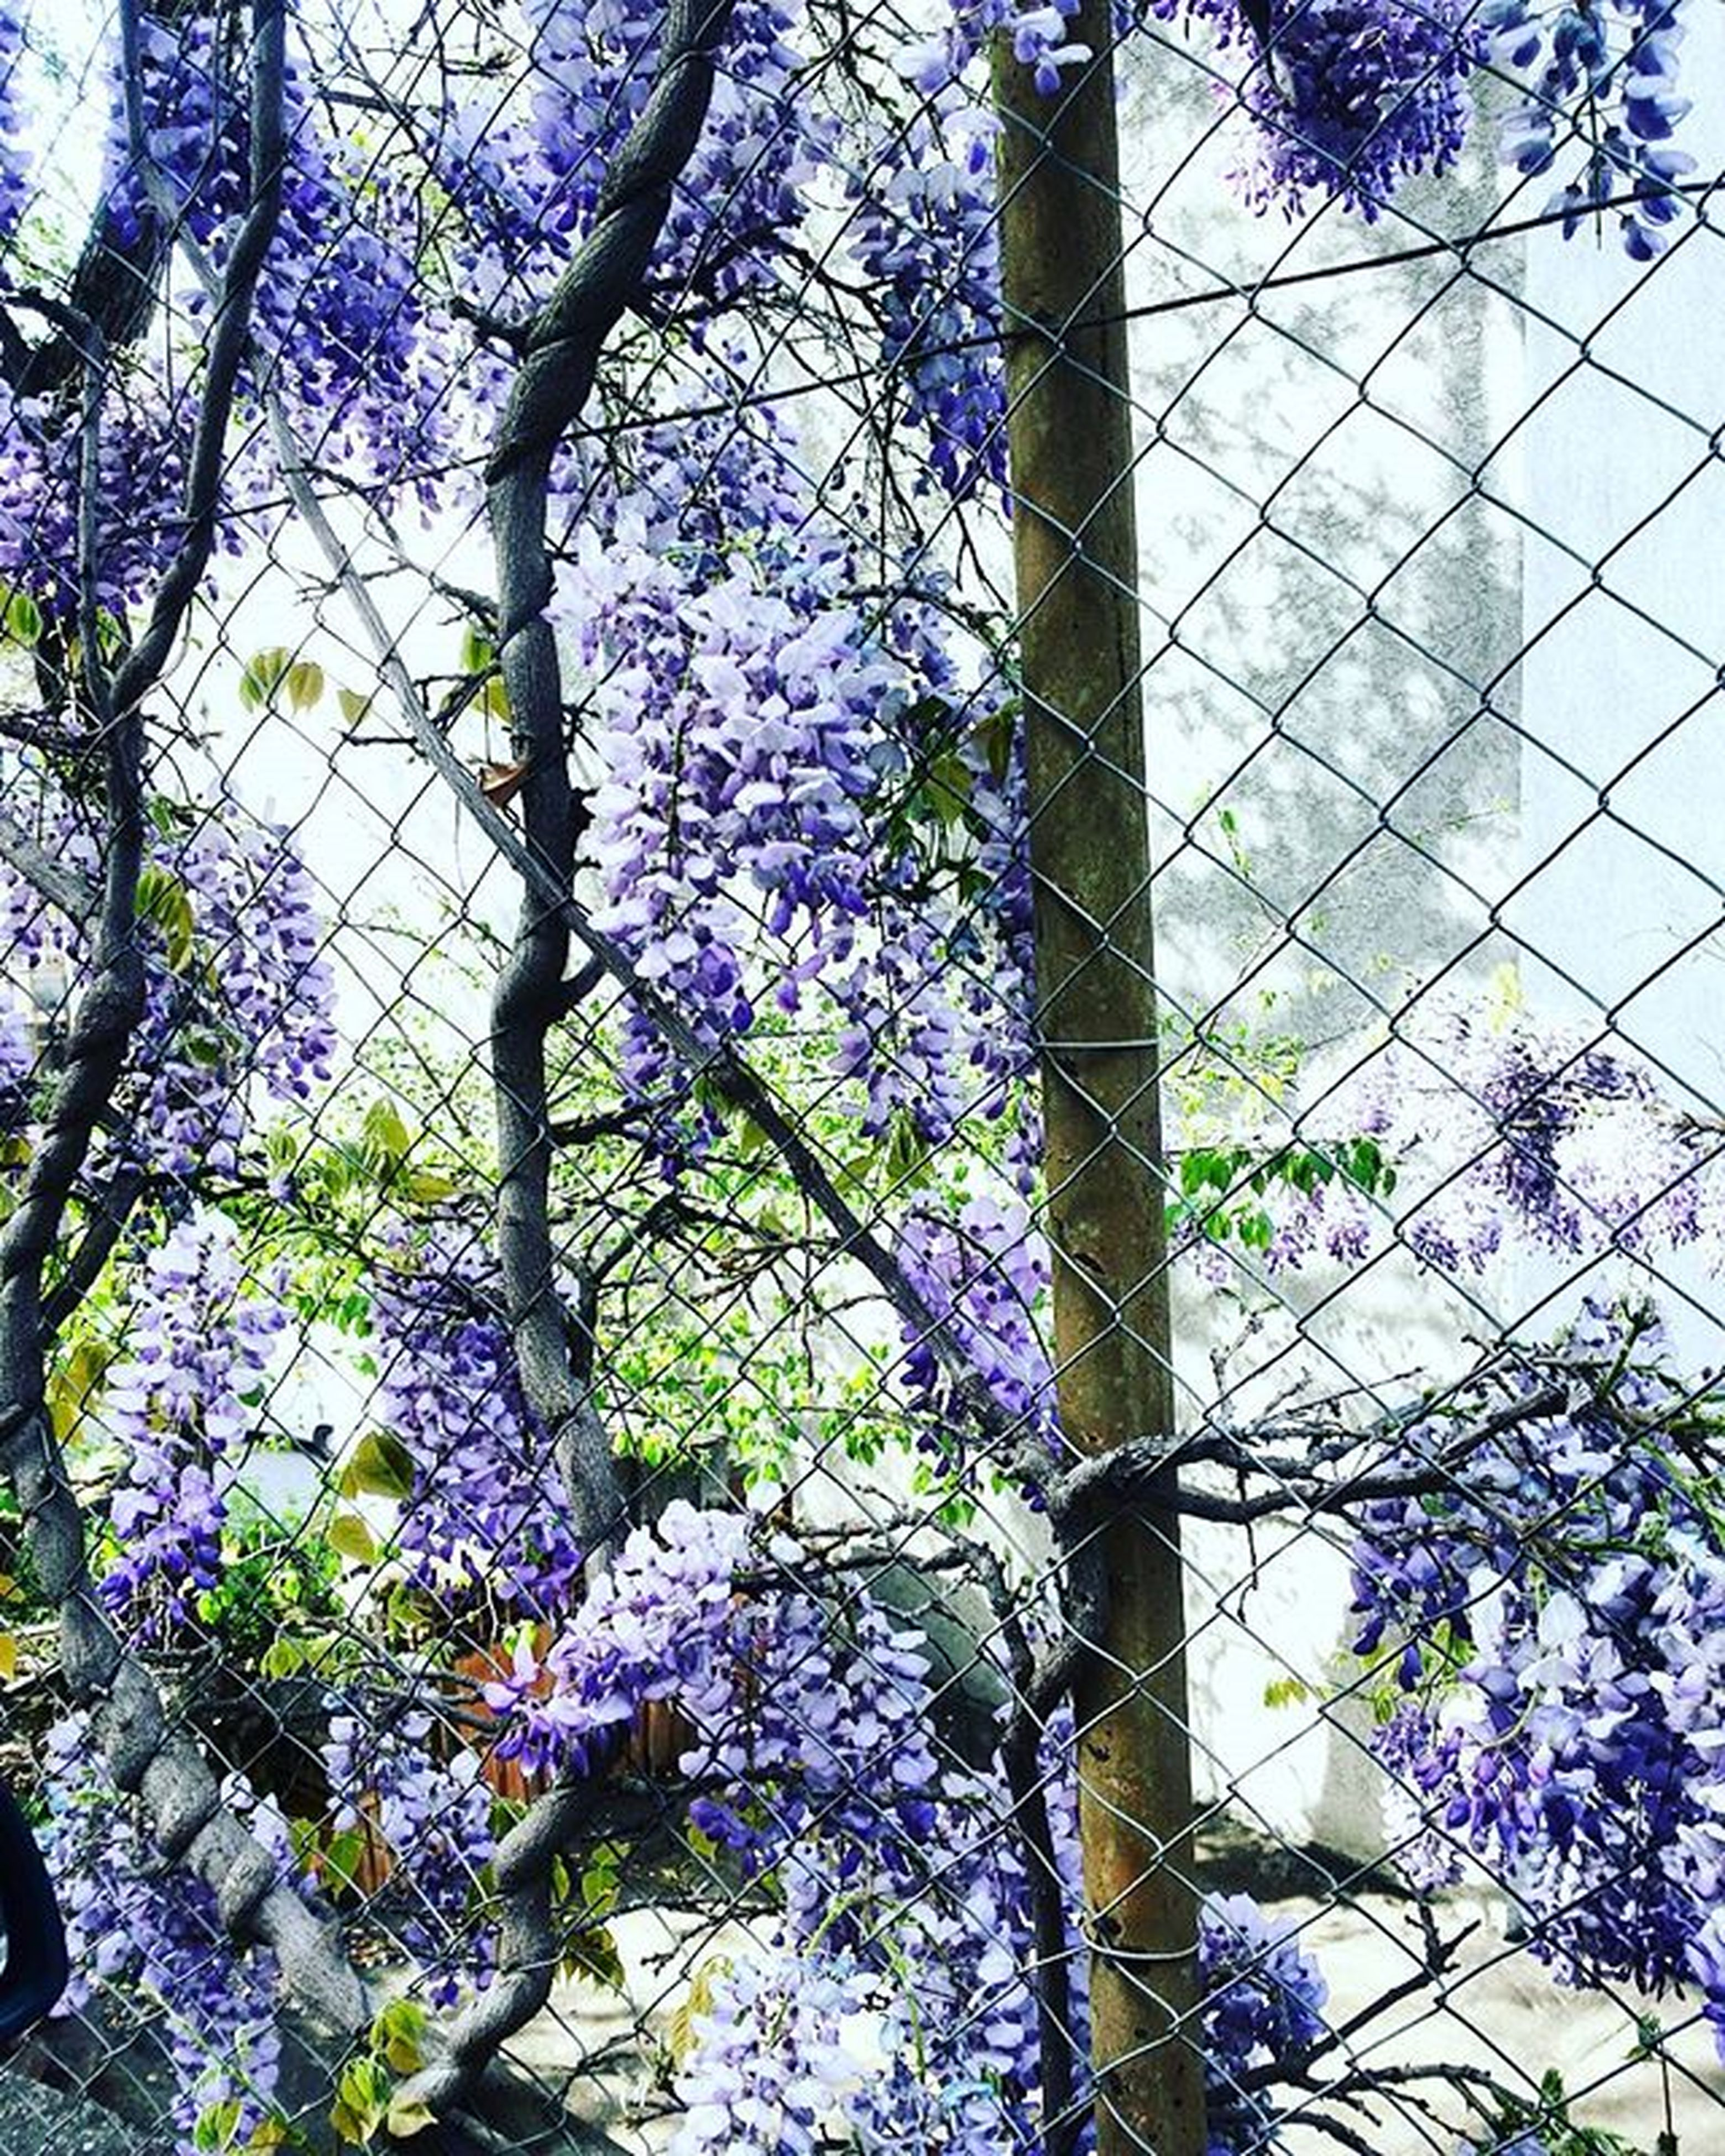 flower, growth, branch, tree, fragility, freshness, nature, tree trunk, purple, plant, beauty in nature, blossom, blue, low angle view, blooming, in bloom, day, no people, built structure, outdoors